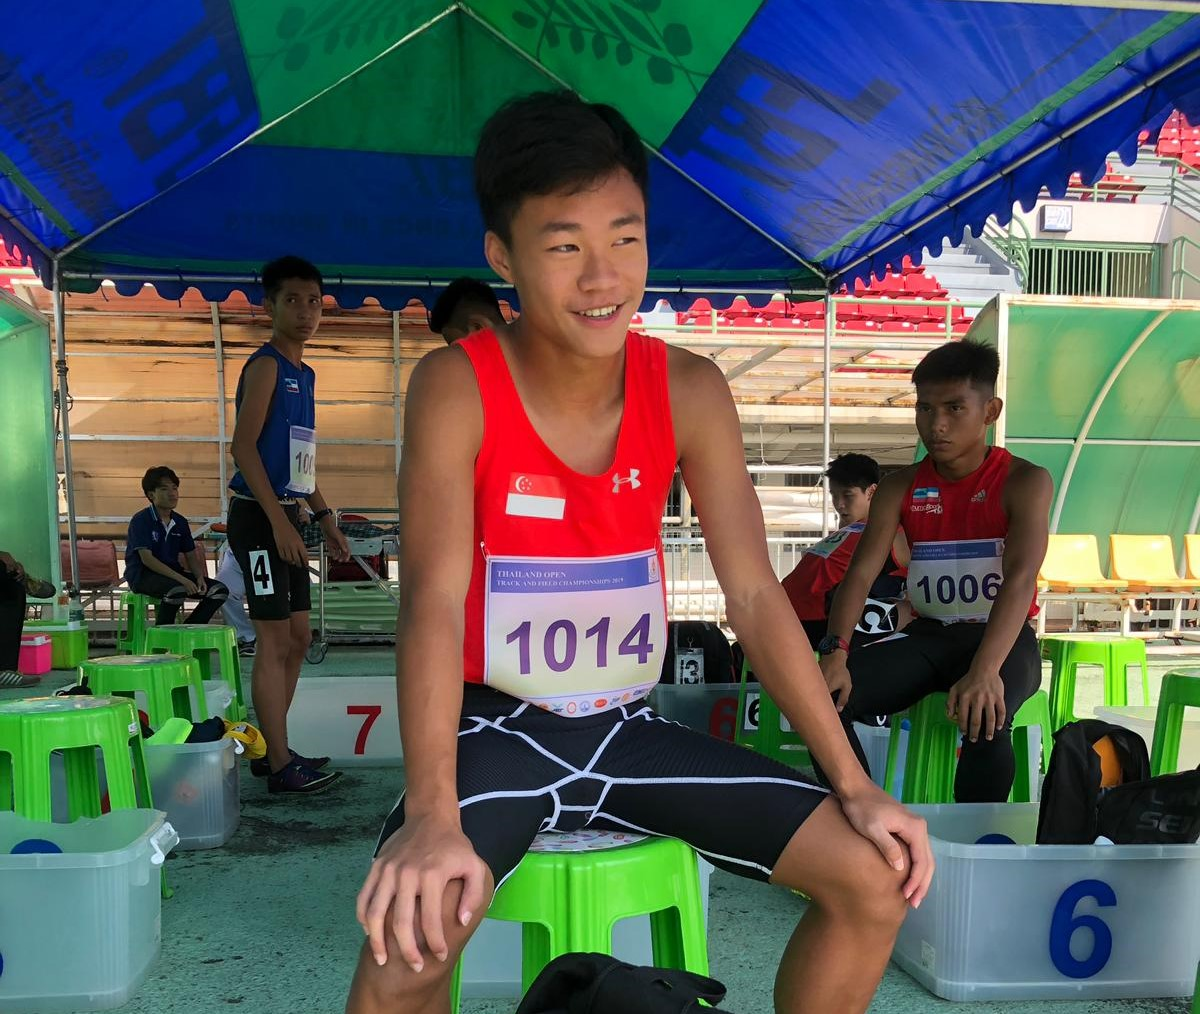 NSG : From High jumper in Primary to Sprinter in Sec school!